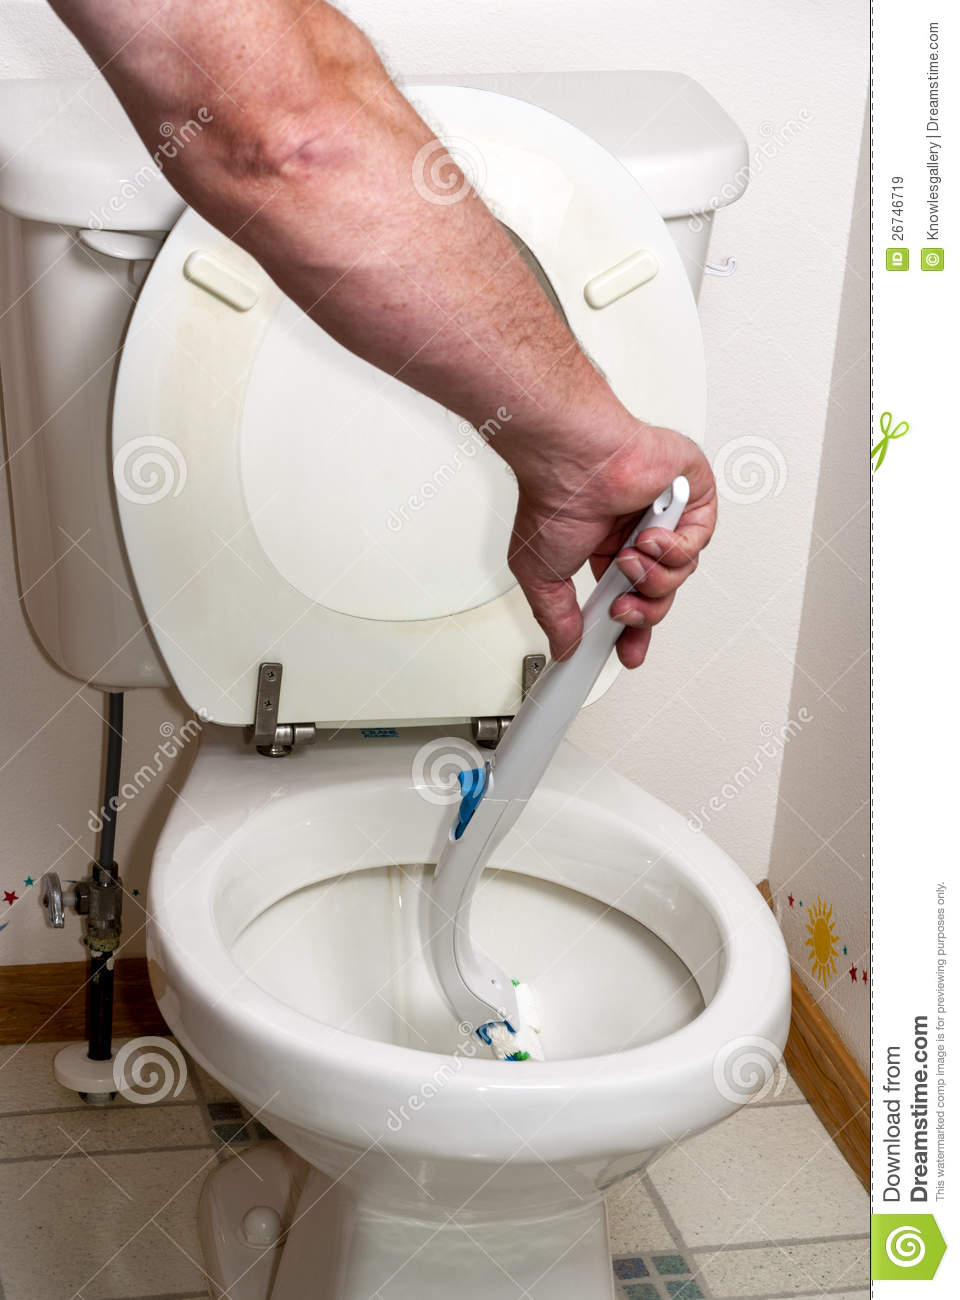 Scrubbing A Toilet With A Wand Royalty Free Stock Images